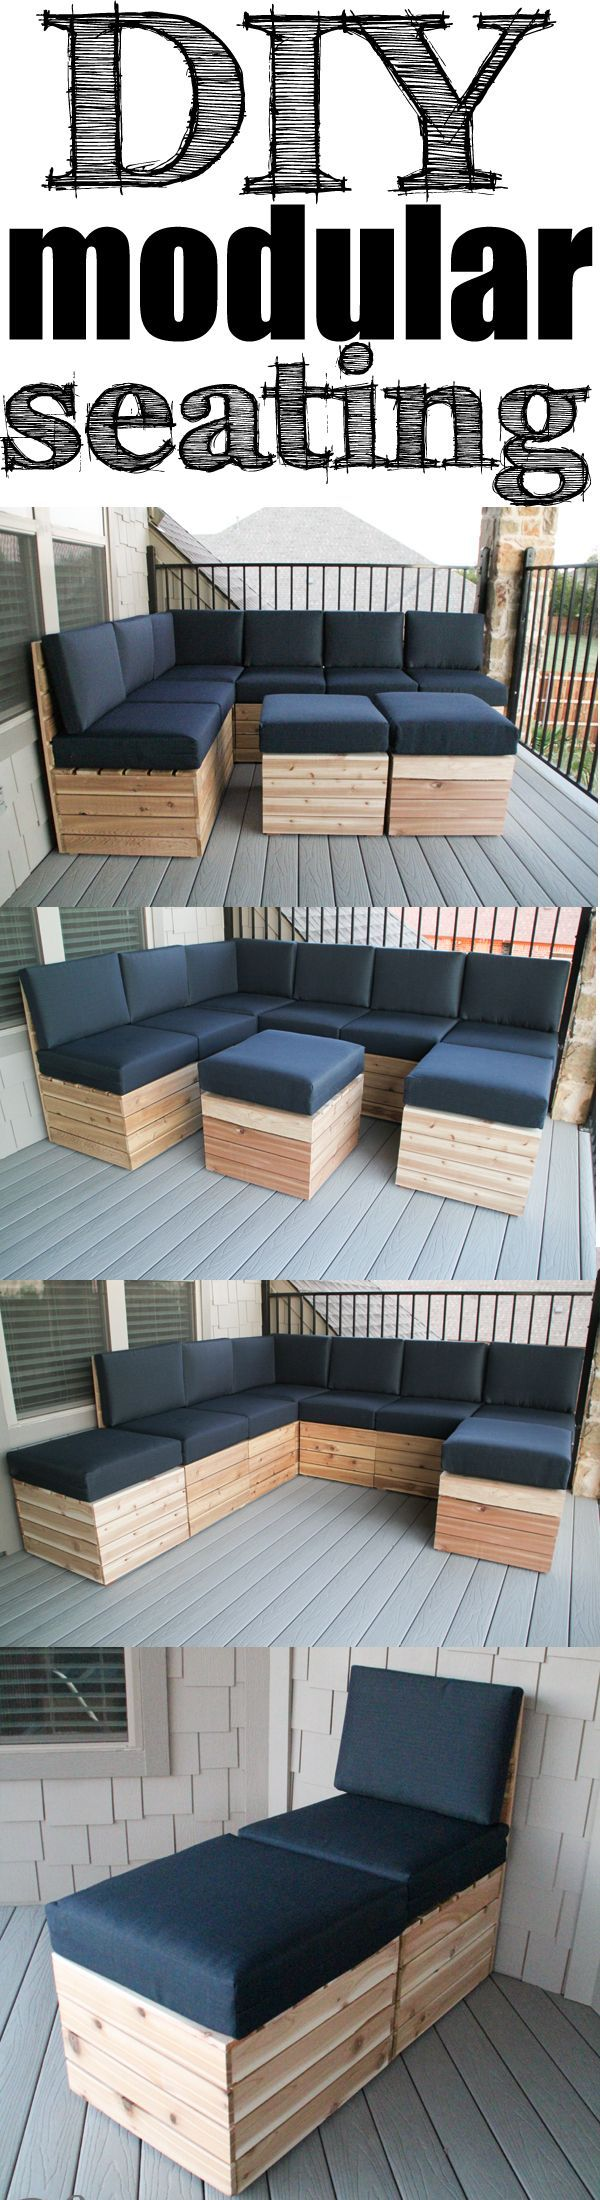 Shanty-2-chic.com modular outdoor design